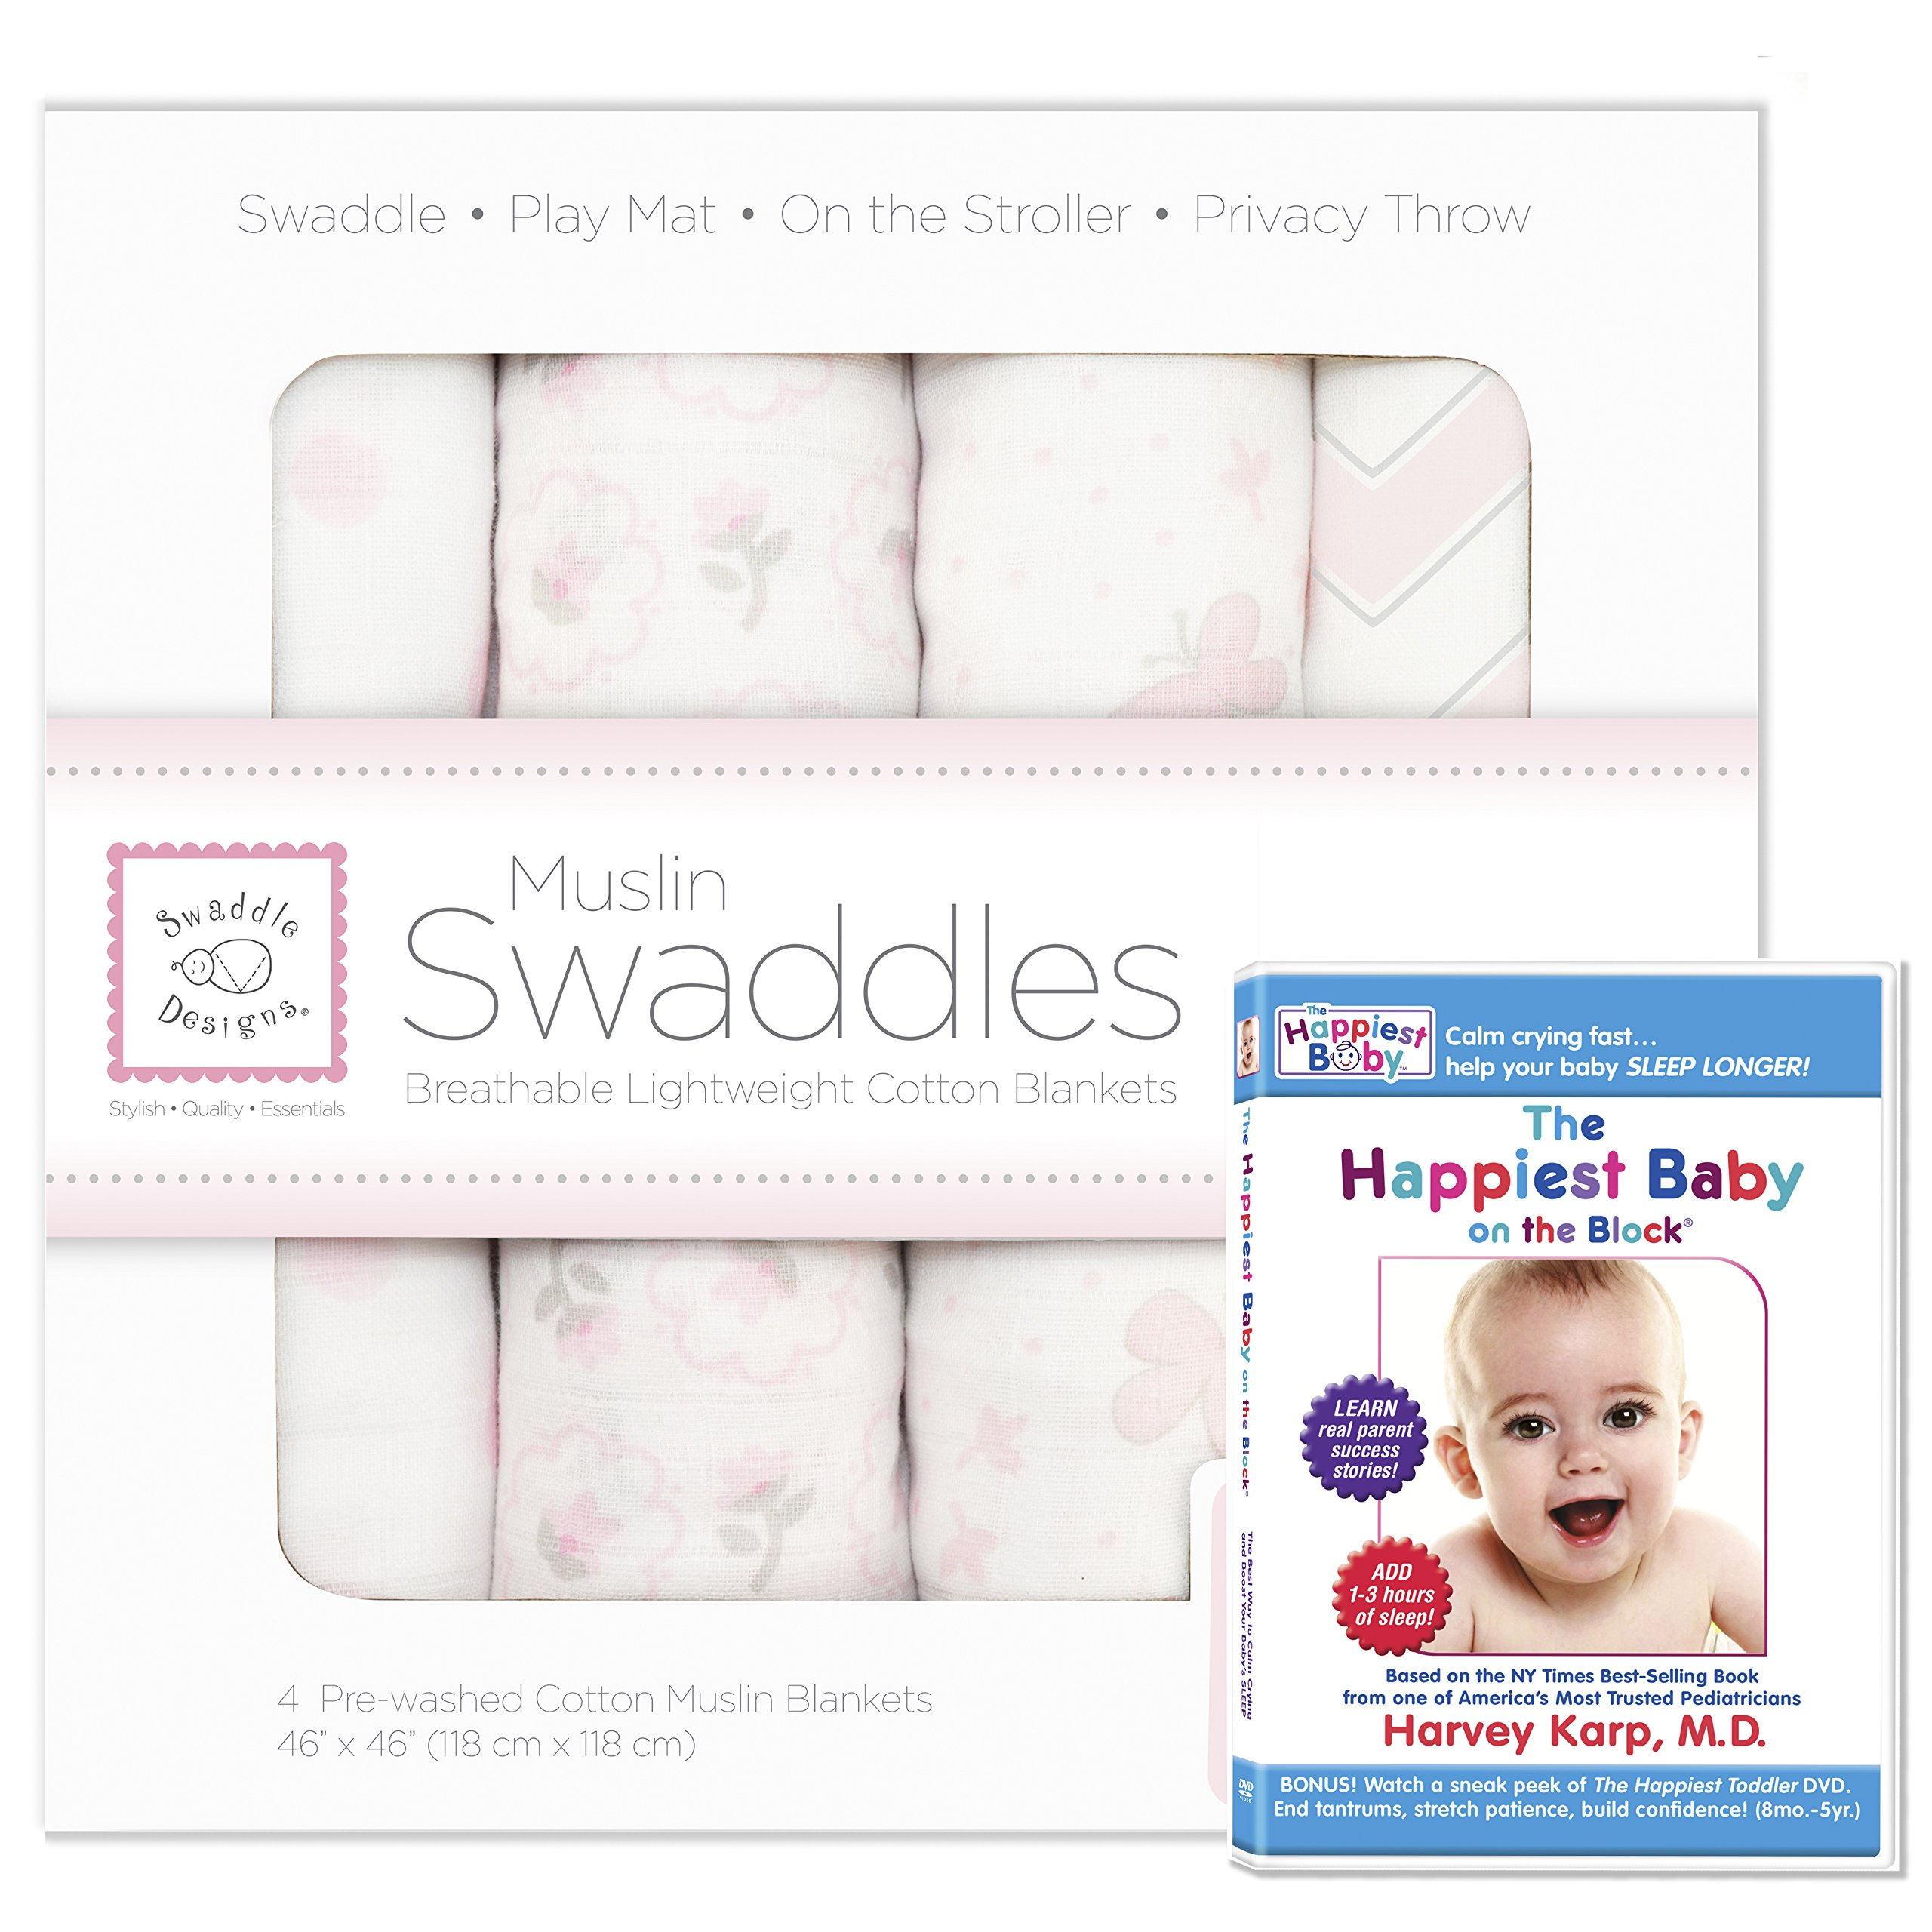 SwaddleDesigns Cotton Muslin Swaddle Blankets, Set of 4 + The Happiest Baby DVD Bundle, Pastel Pink Butterfly Fun